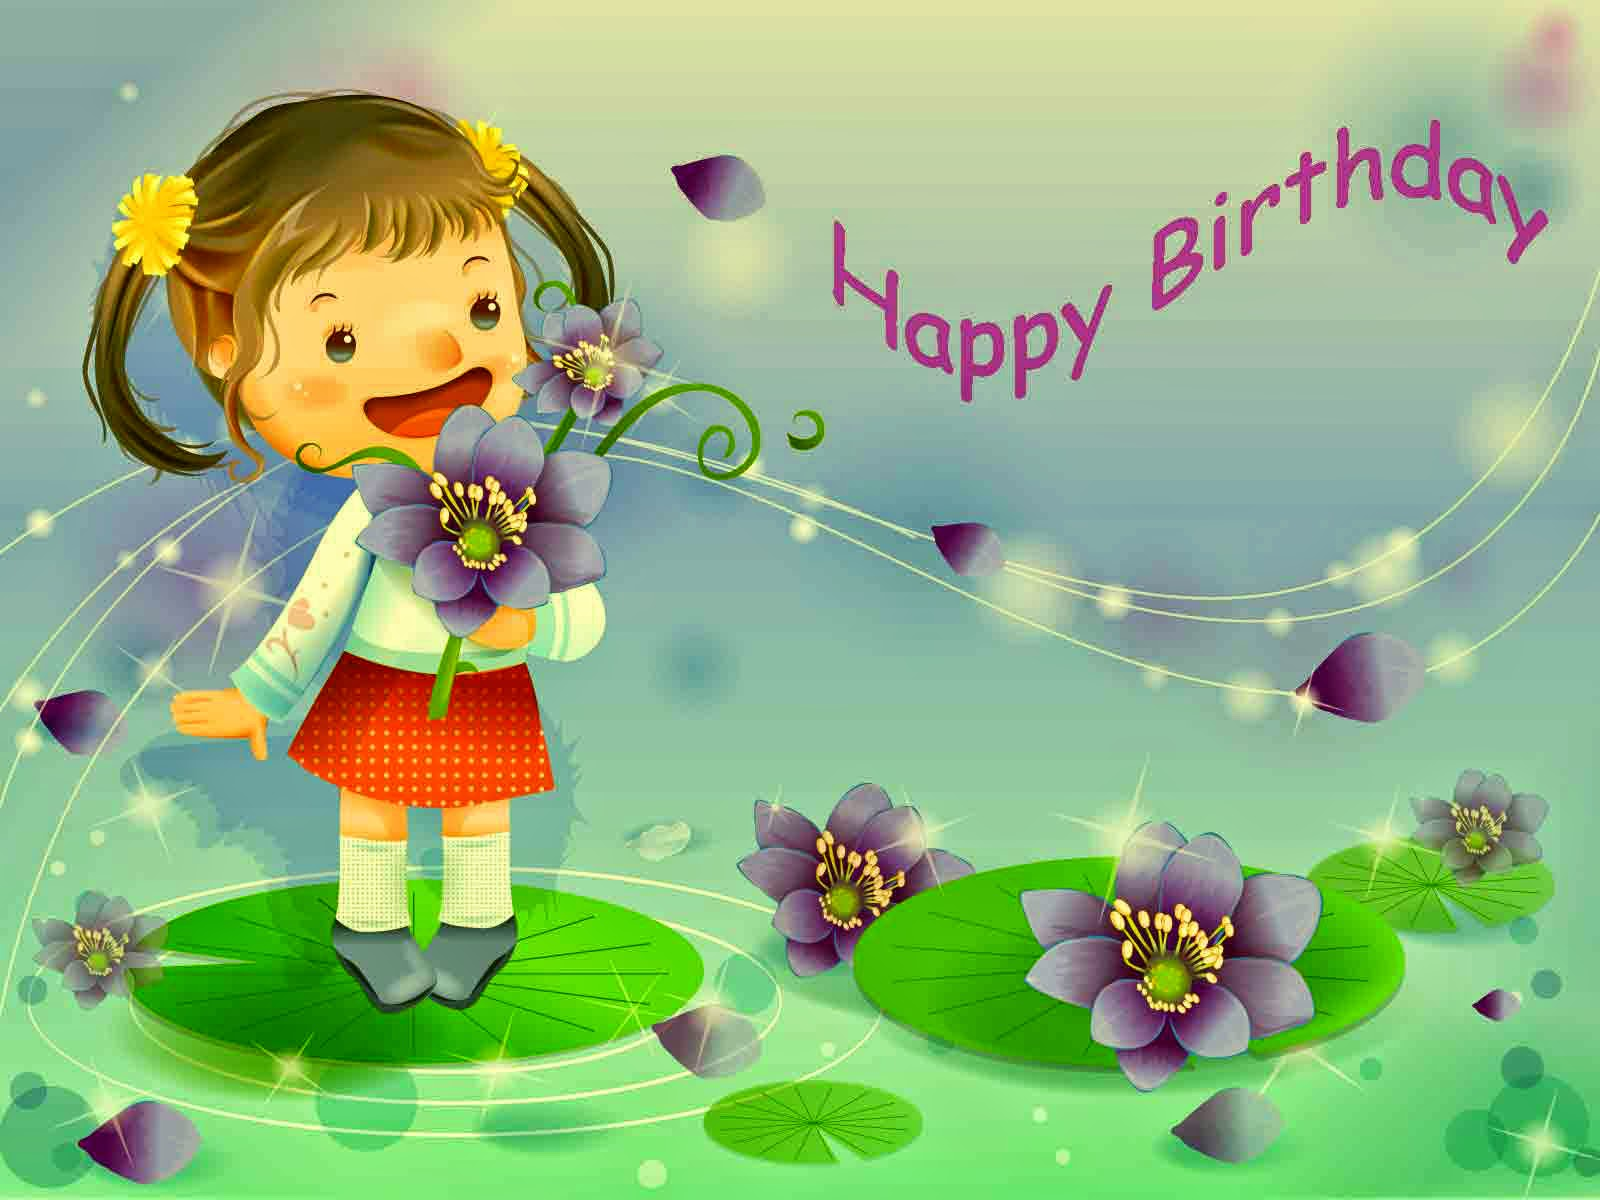 Cute Baby Girls Musical Wishes Cards for Birthday | Festival Chaska